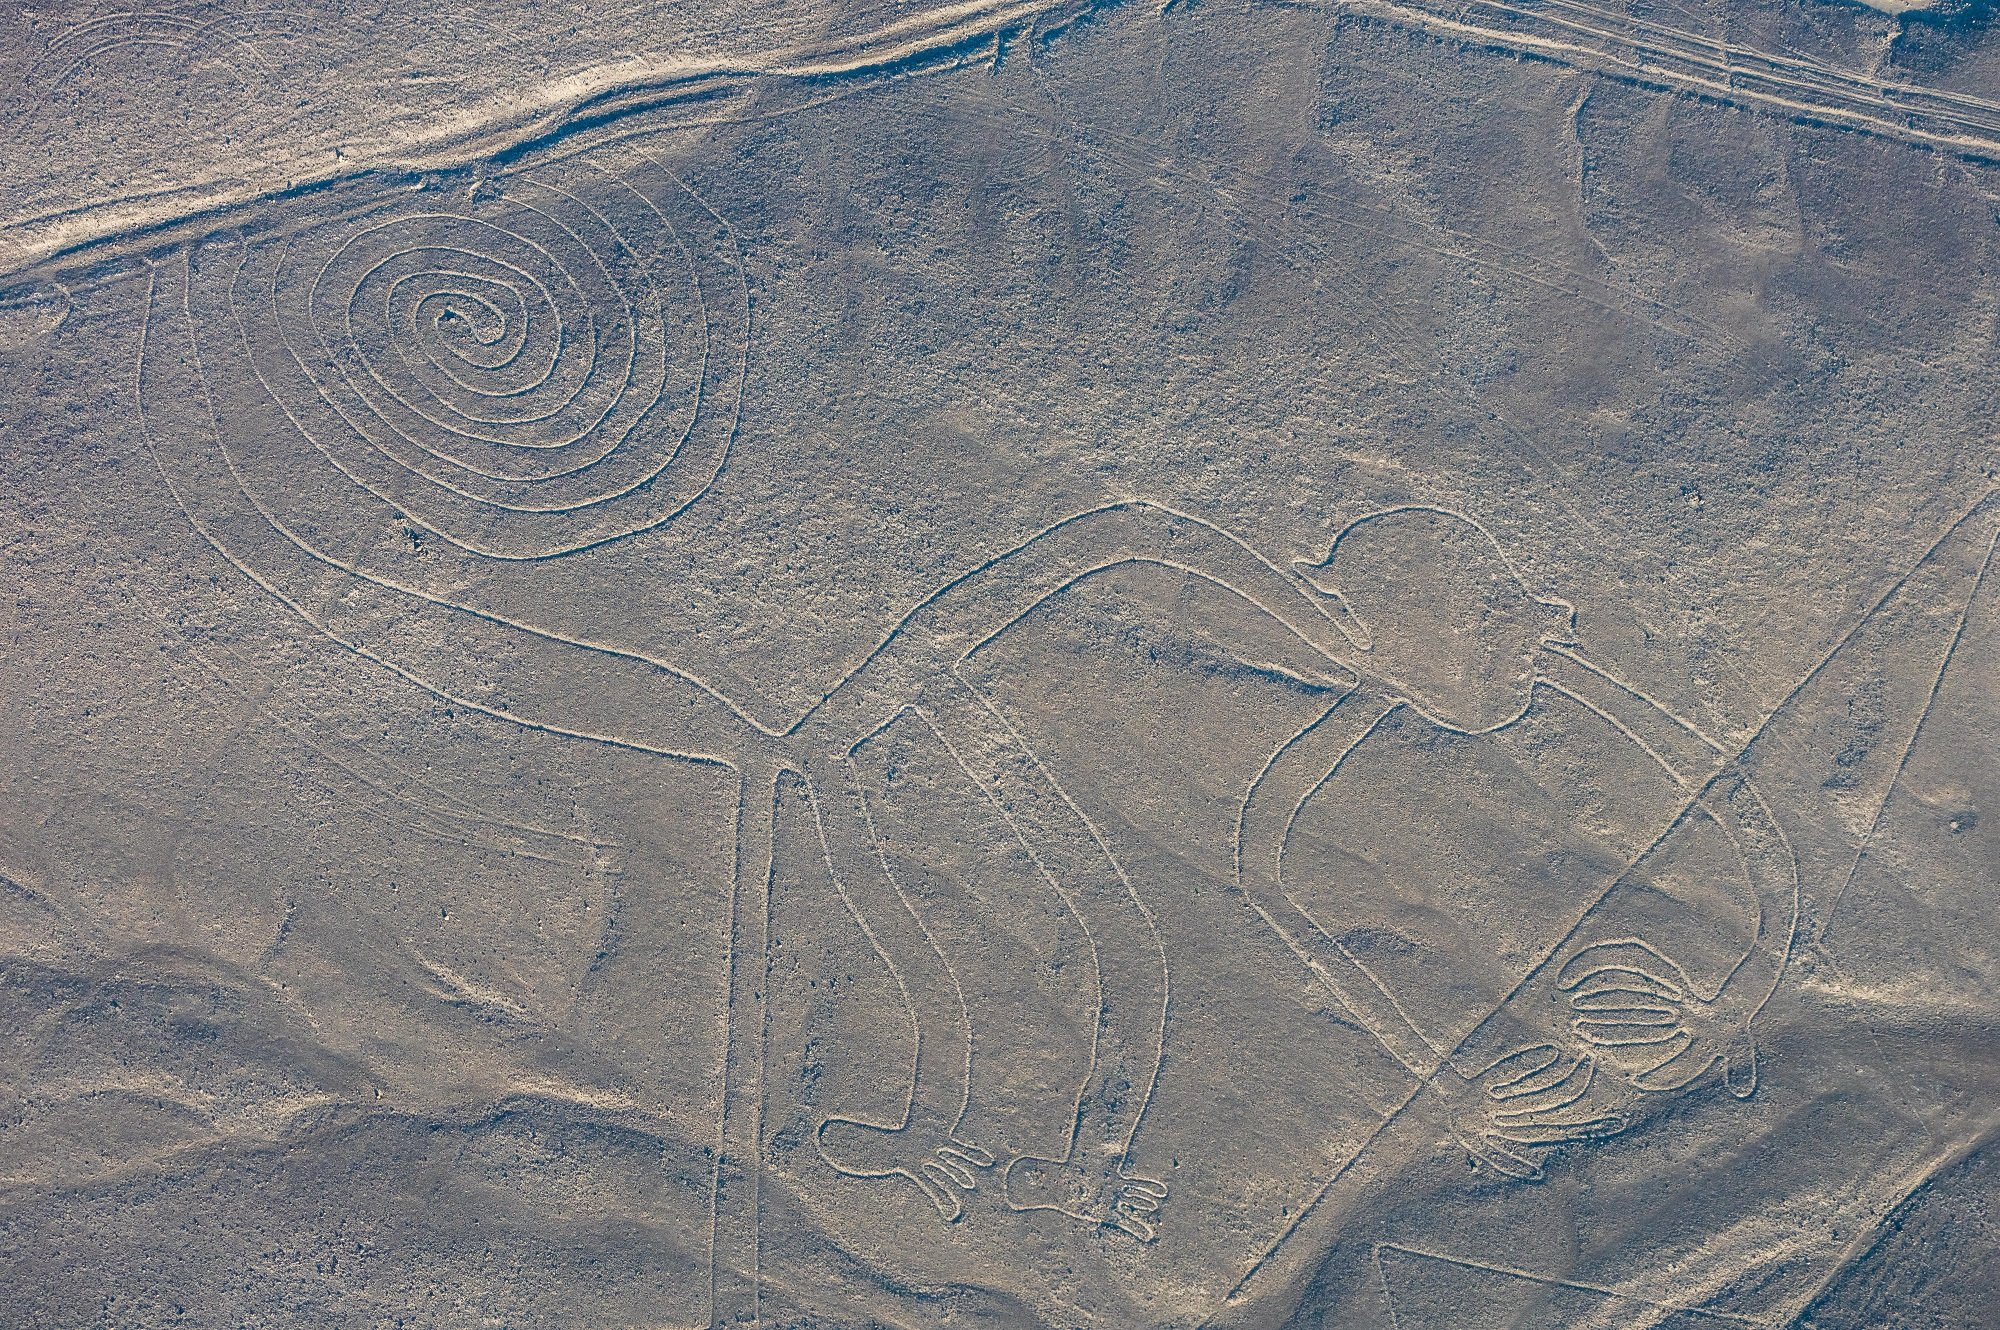 lineas de nazca nazca peru 2015 07 29 dd 49 20 Things You Probably Didn't Know About The Original Battlestar Galactica